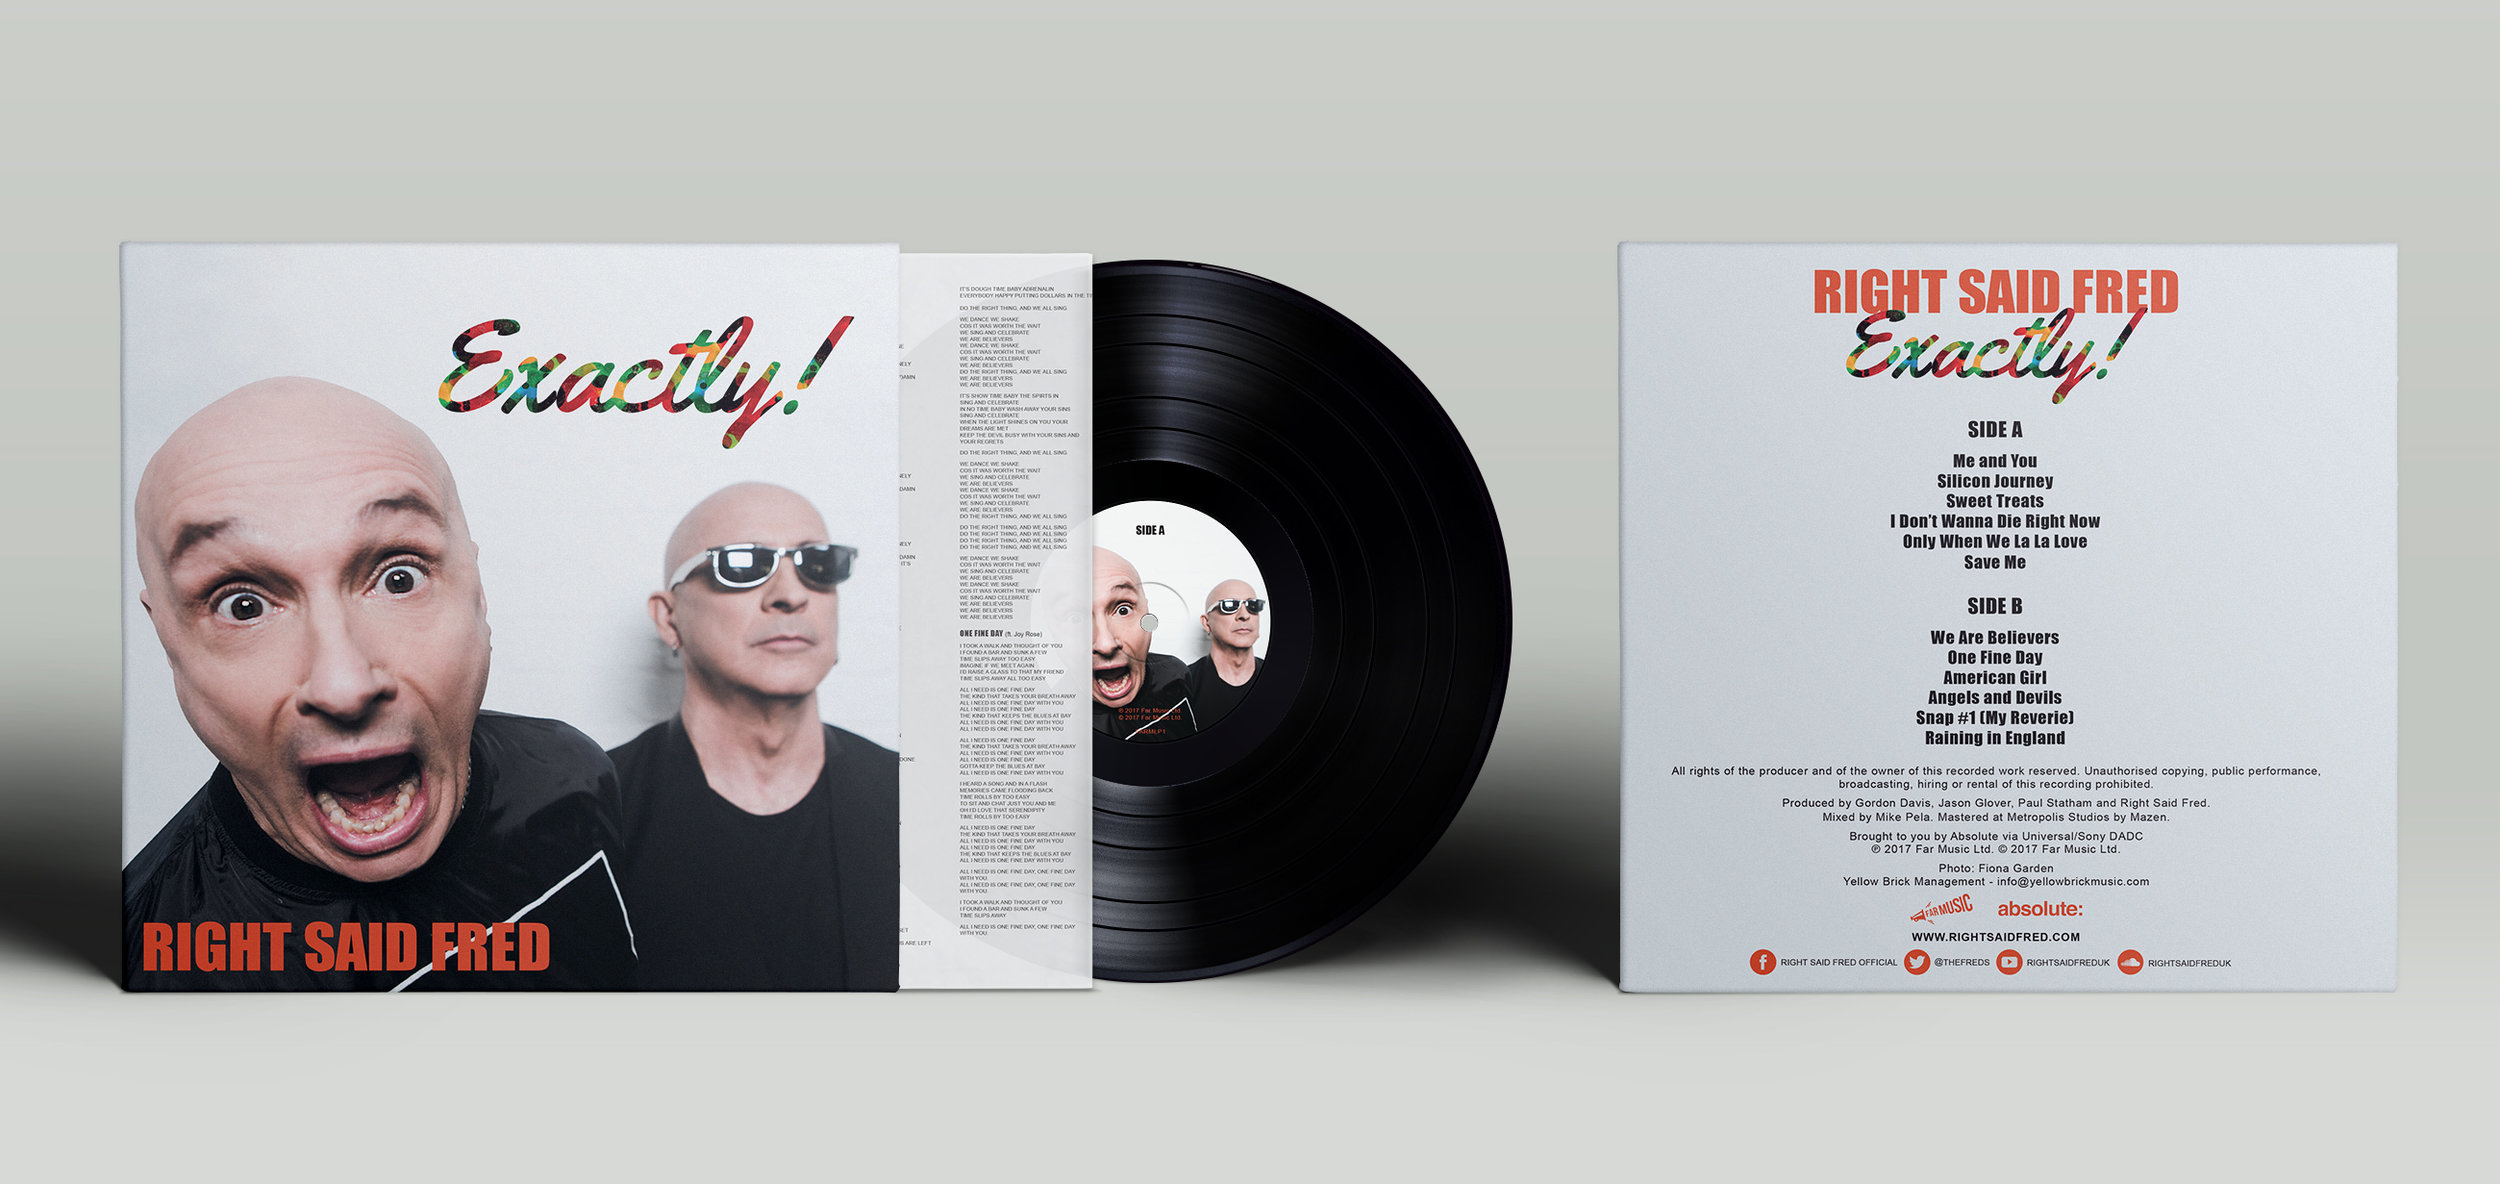 RIGHT SAID FRED 'EXACTLY' ALBUM LP